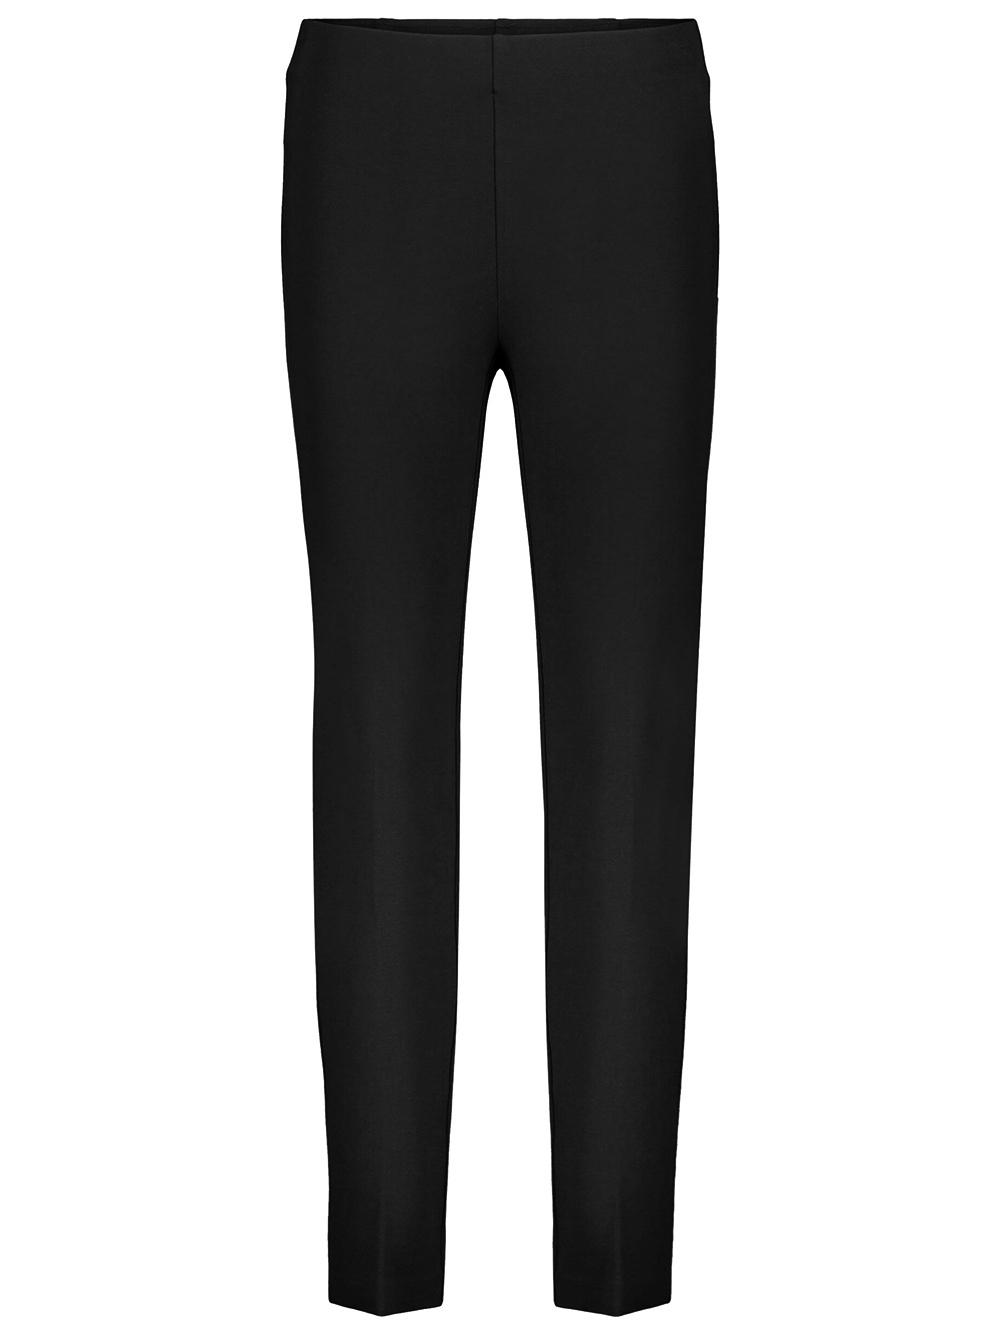 Springfield Tribeca Stretch Classic Pull On Pant Item # 1291TR